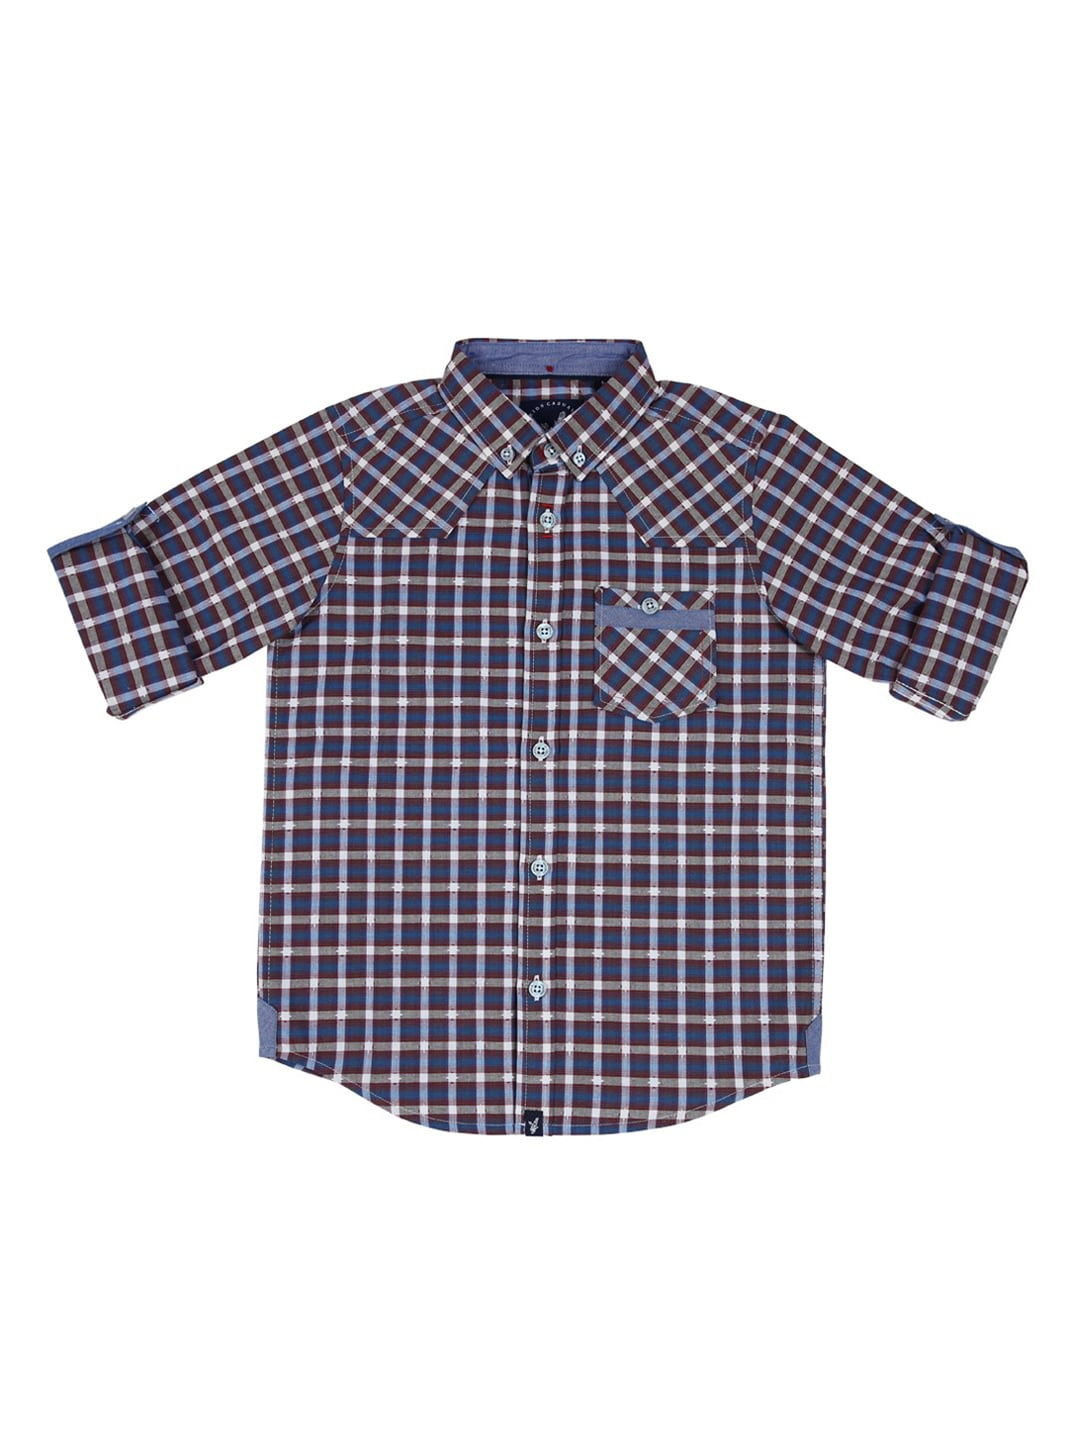 77aa7ab15 Kids Shirts- Buy Shirts for Kids online in India